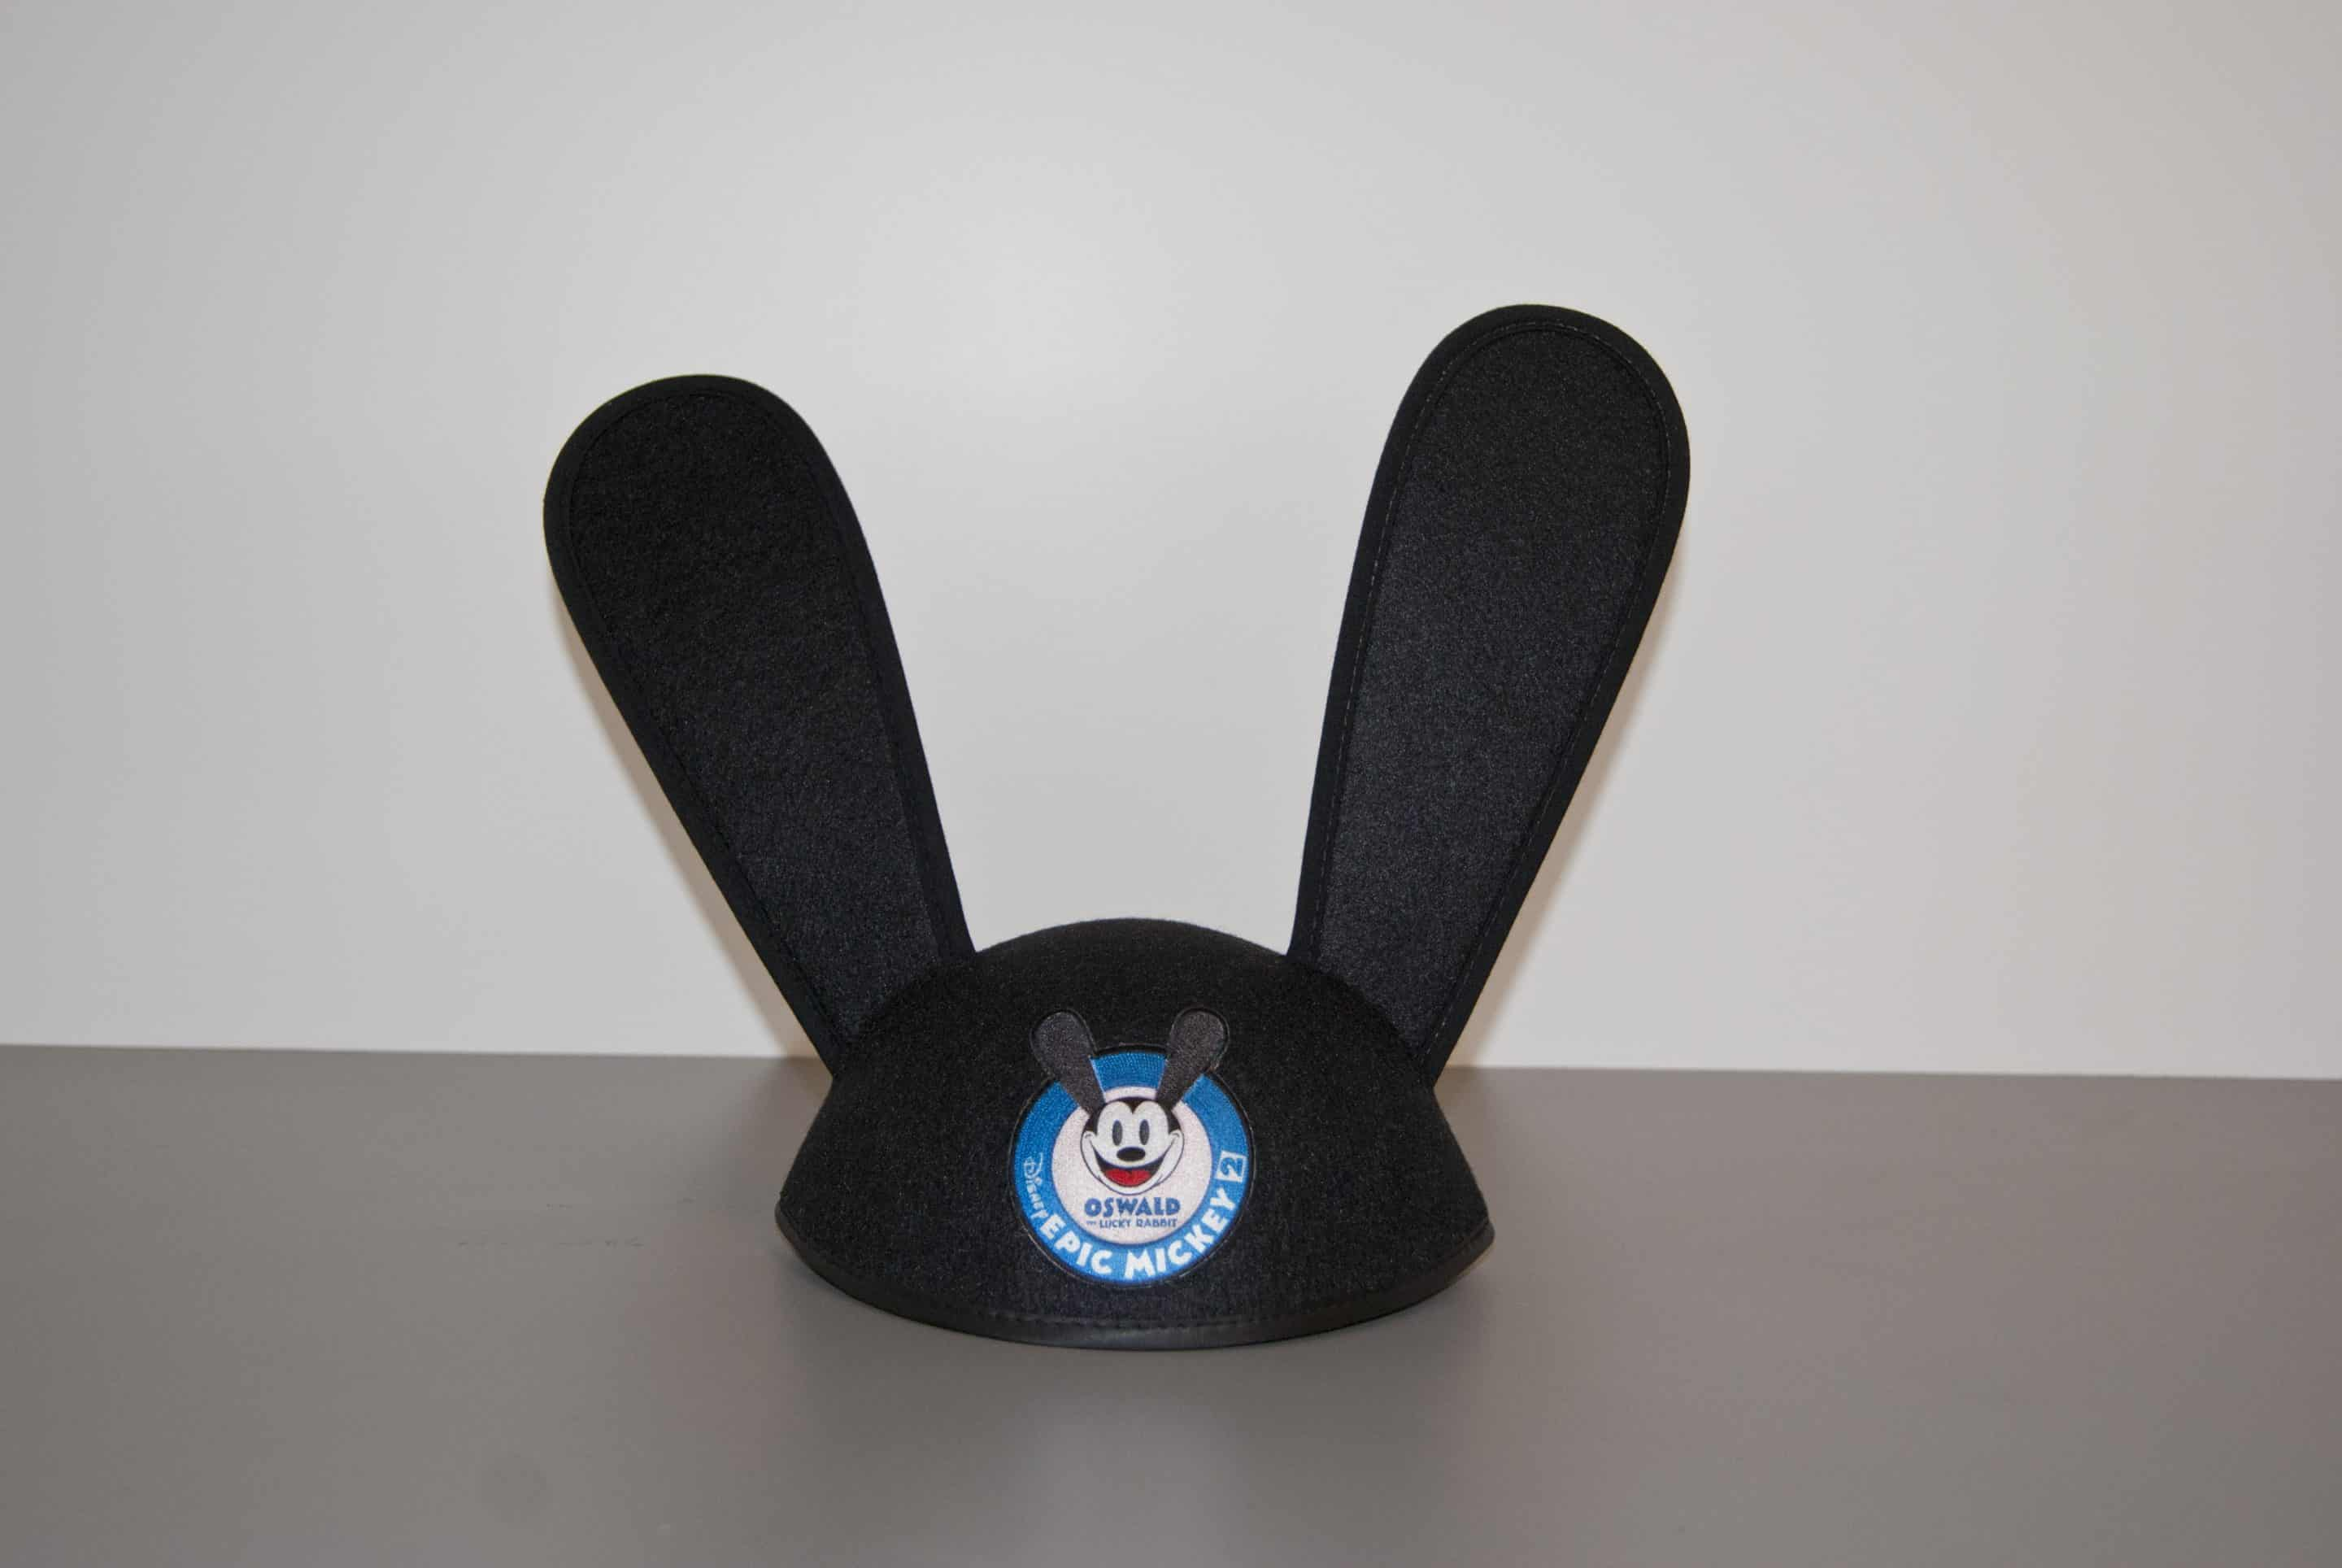 GIVEAWAY: Epic Mickey 2-The Power of Two Game Plus Oswald Ears